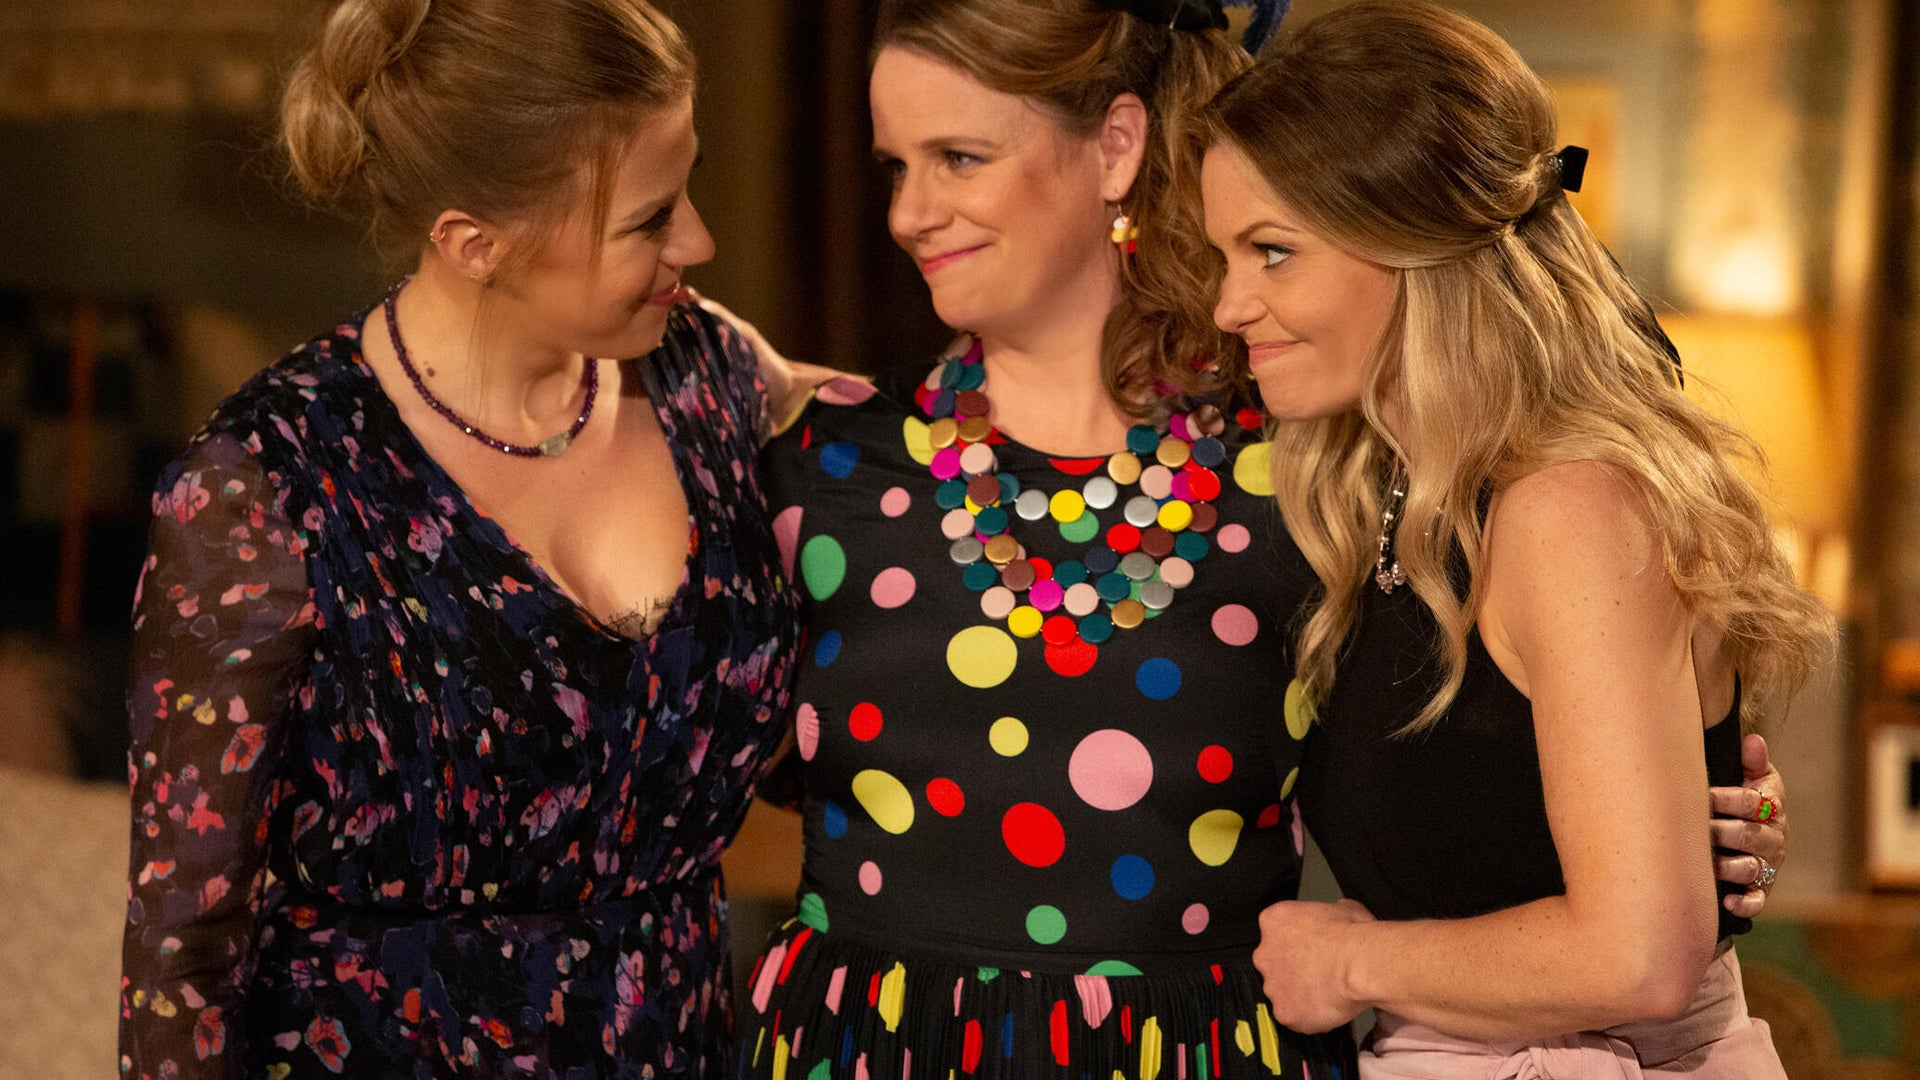 Jodie Sweetin, Andrea Barber, and Candace Cameron Bure, Fuller House